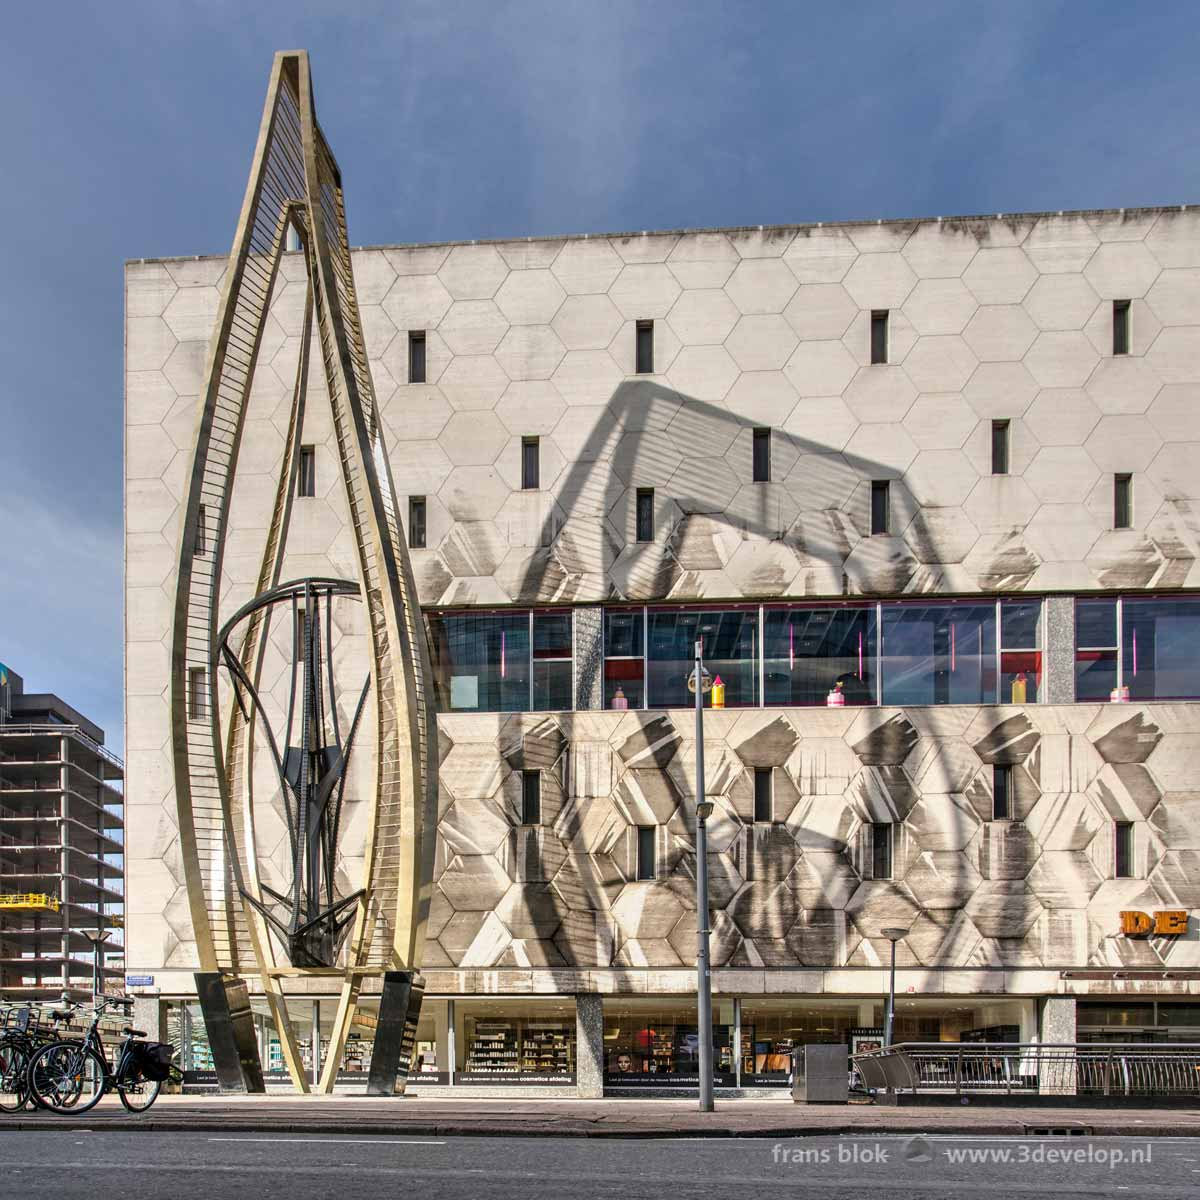 The sculpture by Naum Gabo, nicknamed The Thing, casts a shadow on the Bijenkorf department store